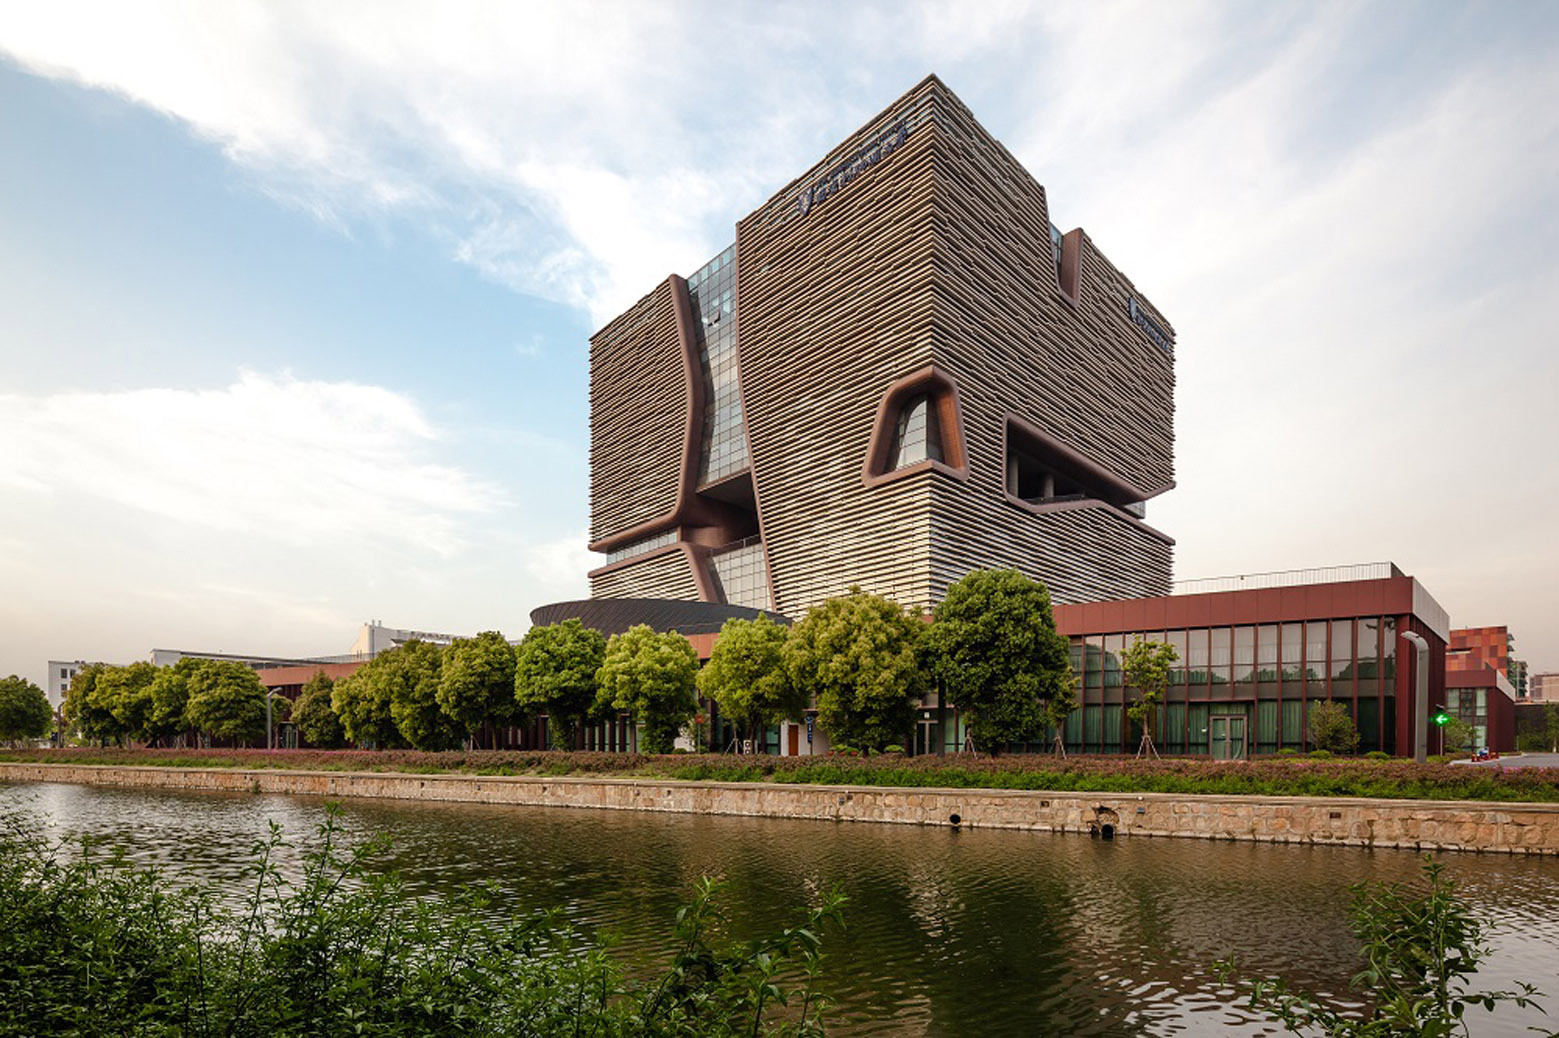 XJTLU Becomes First Chinese Architecture Course with Unconditional RIBA Accreditation , XJTLU's Administration Information Building, completed in 2013 by Aedas. Image Courtesy of Aedas